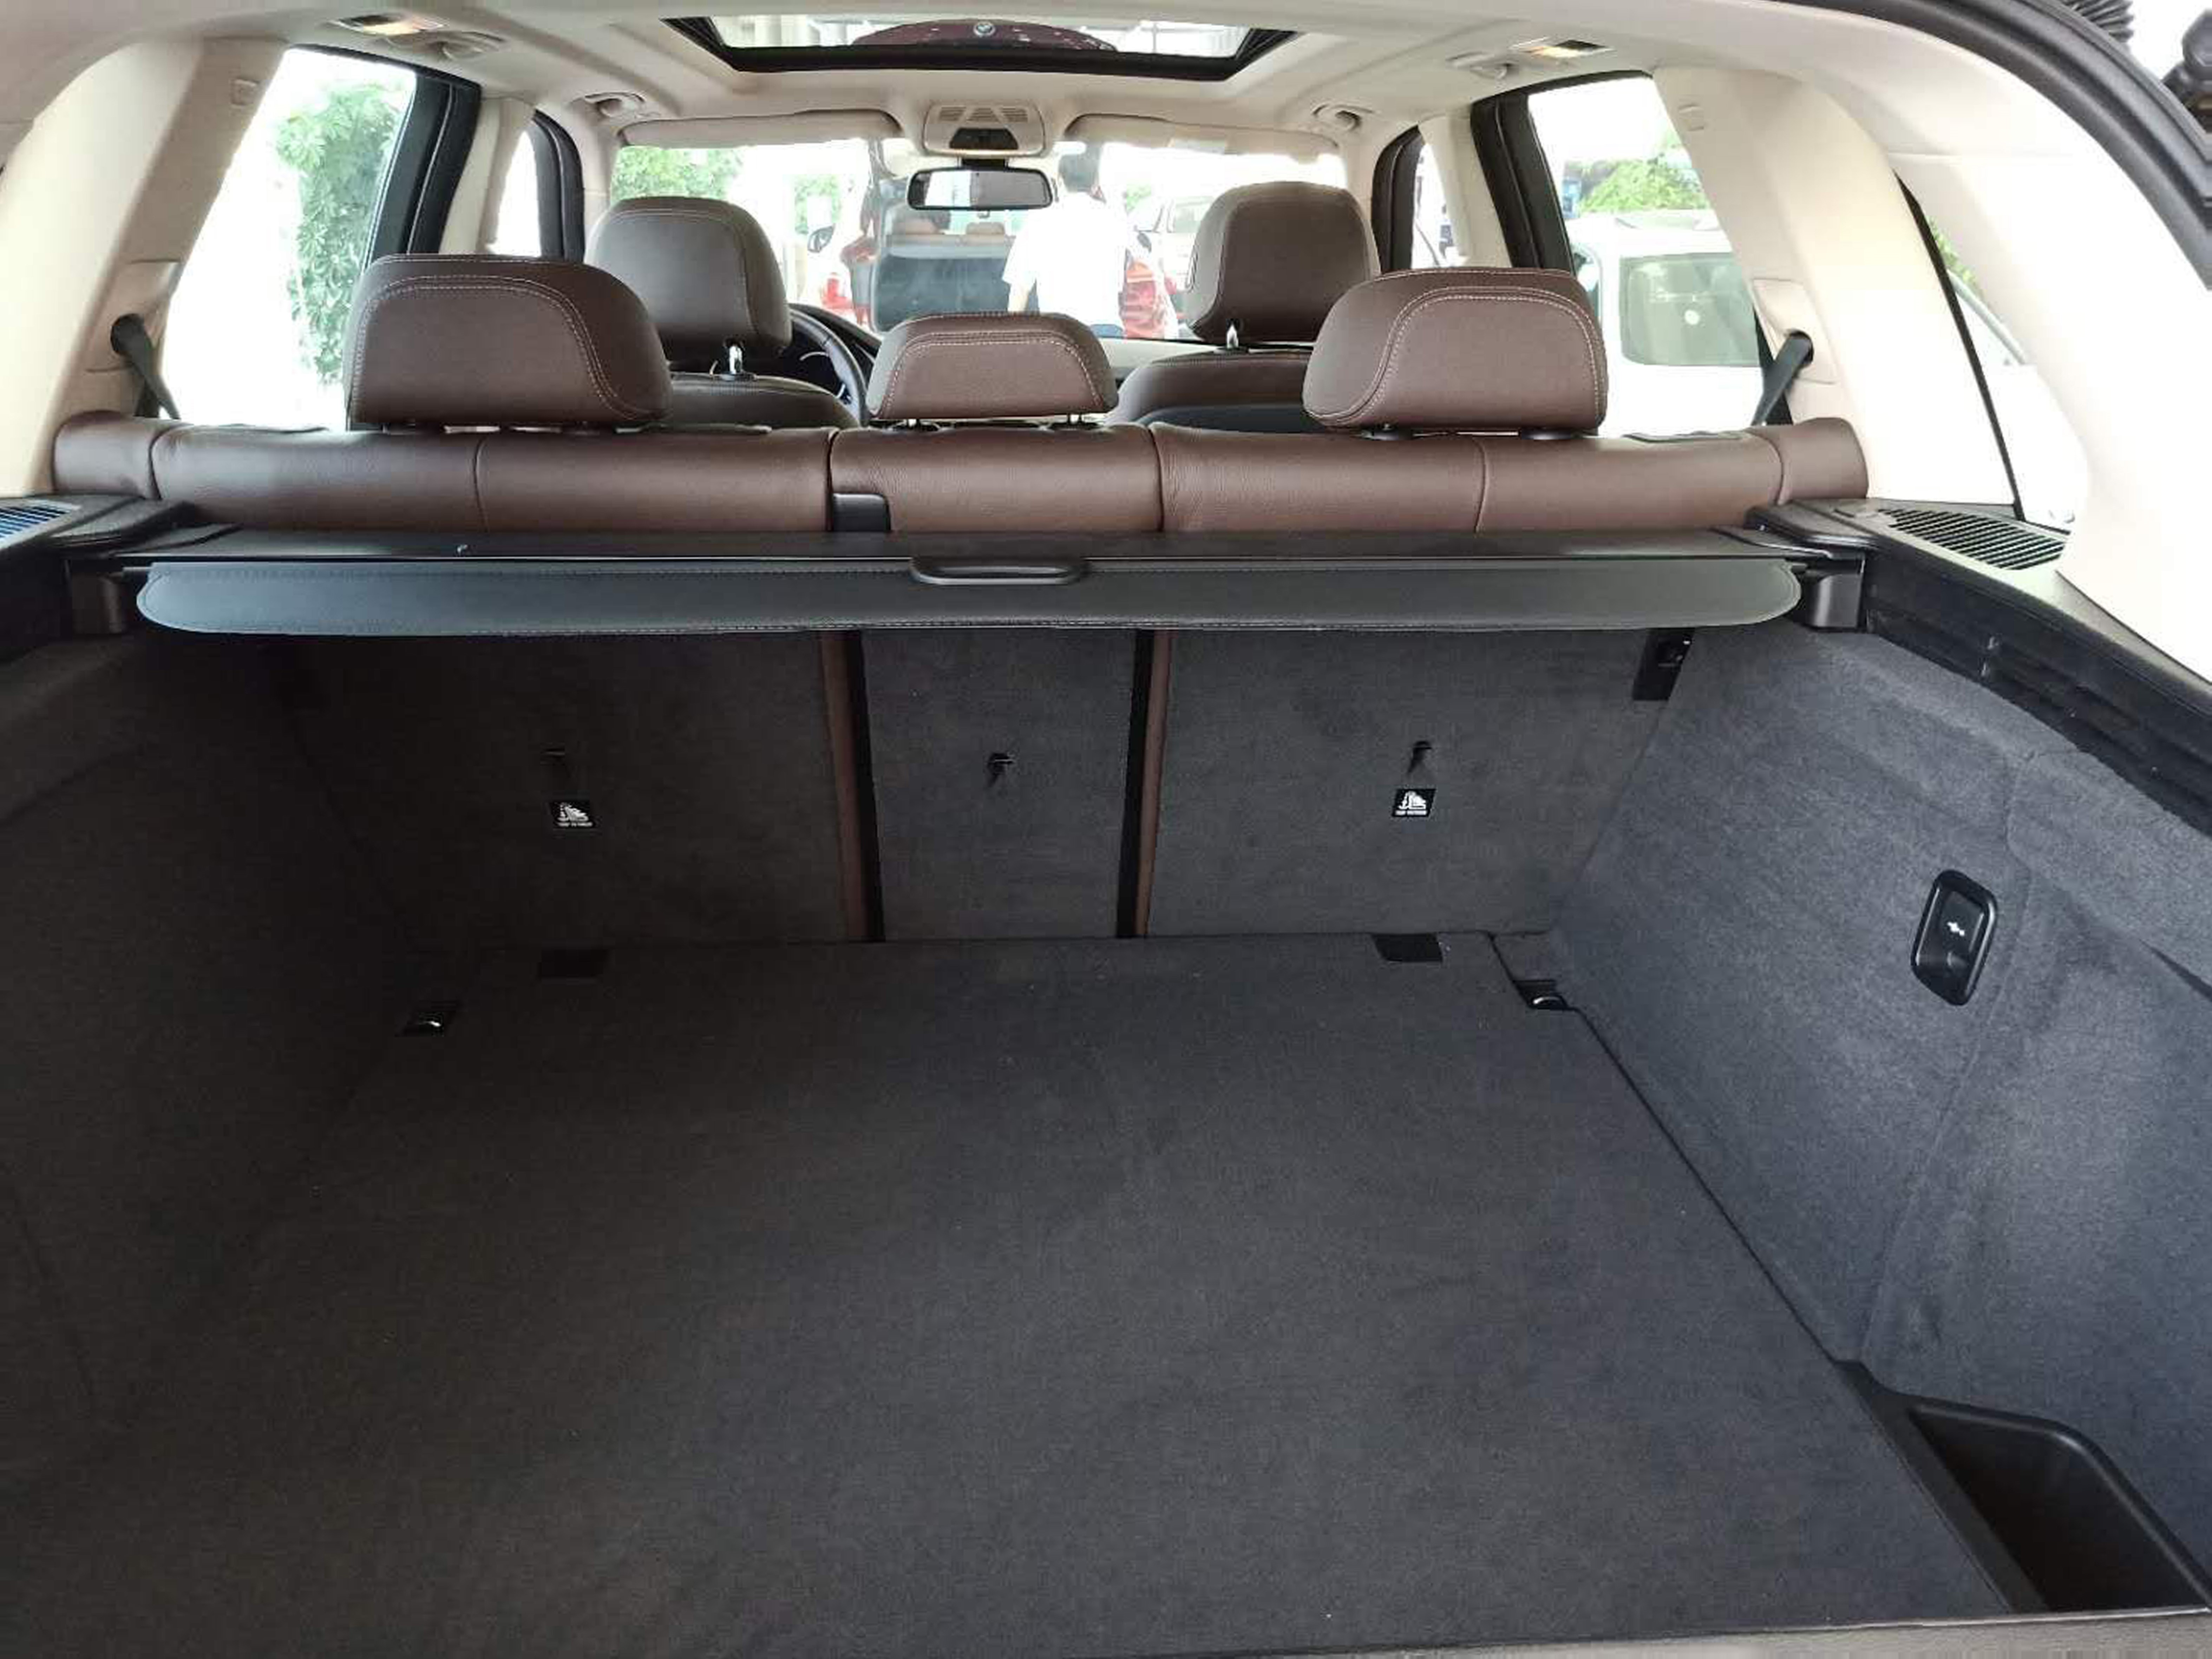 New BMW X5 Cargo Cover